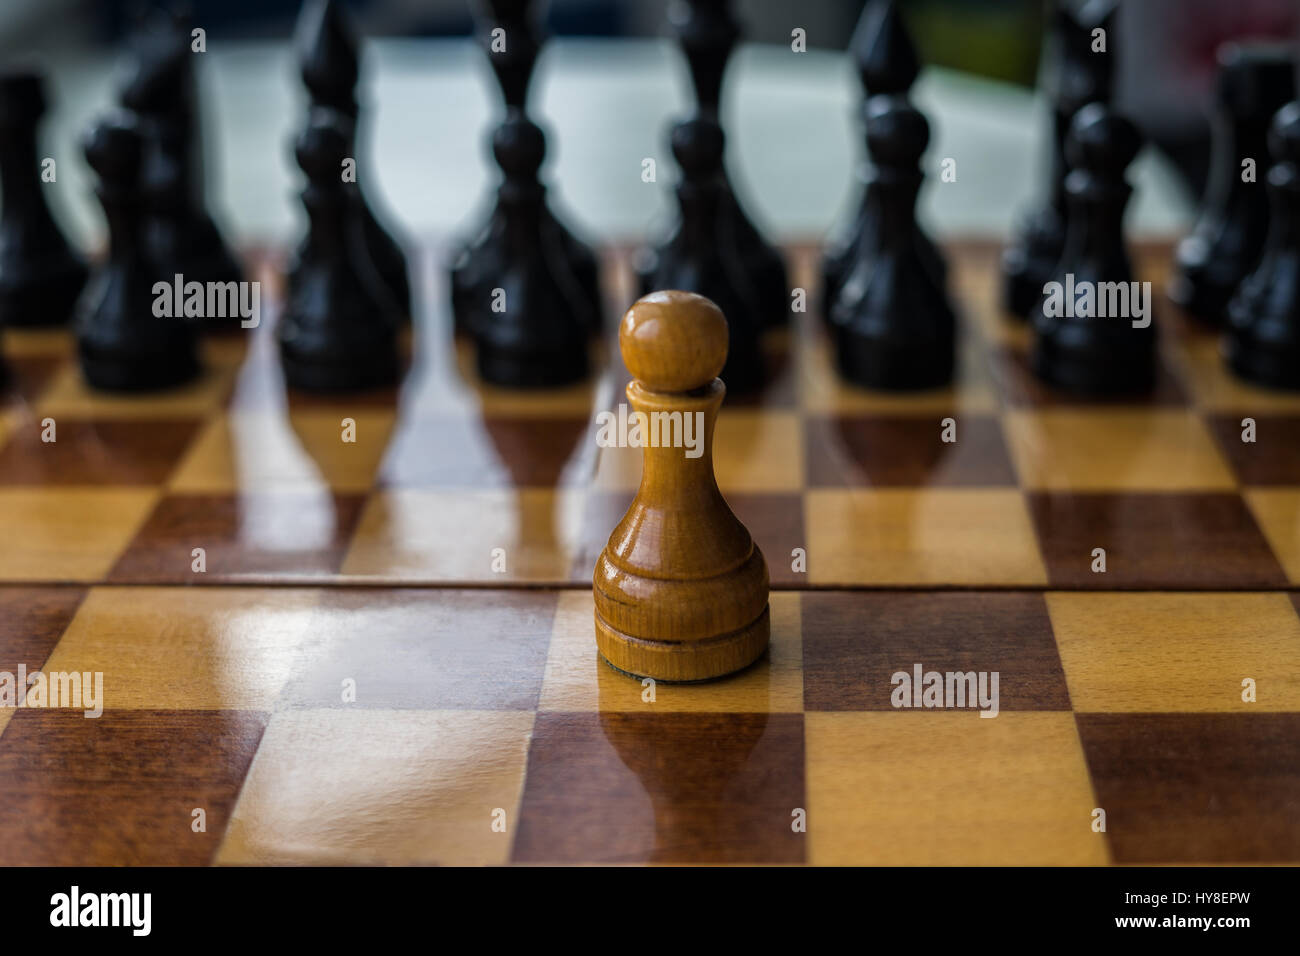 White chess pawn alone on a chessboard. conceptual photo of fighting alone and overcome the life difficulties alone. - Stock Image